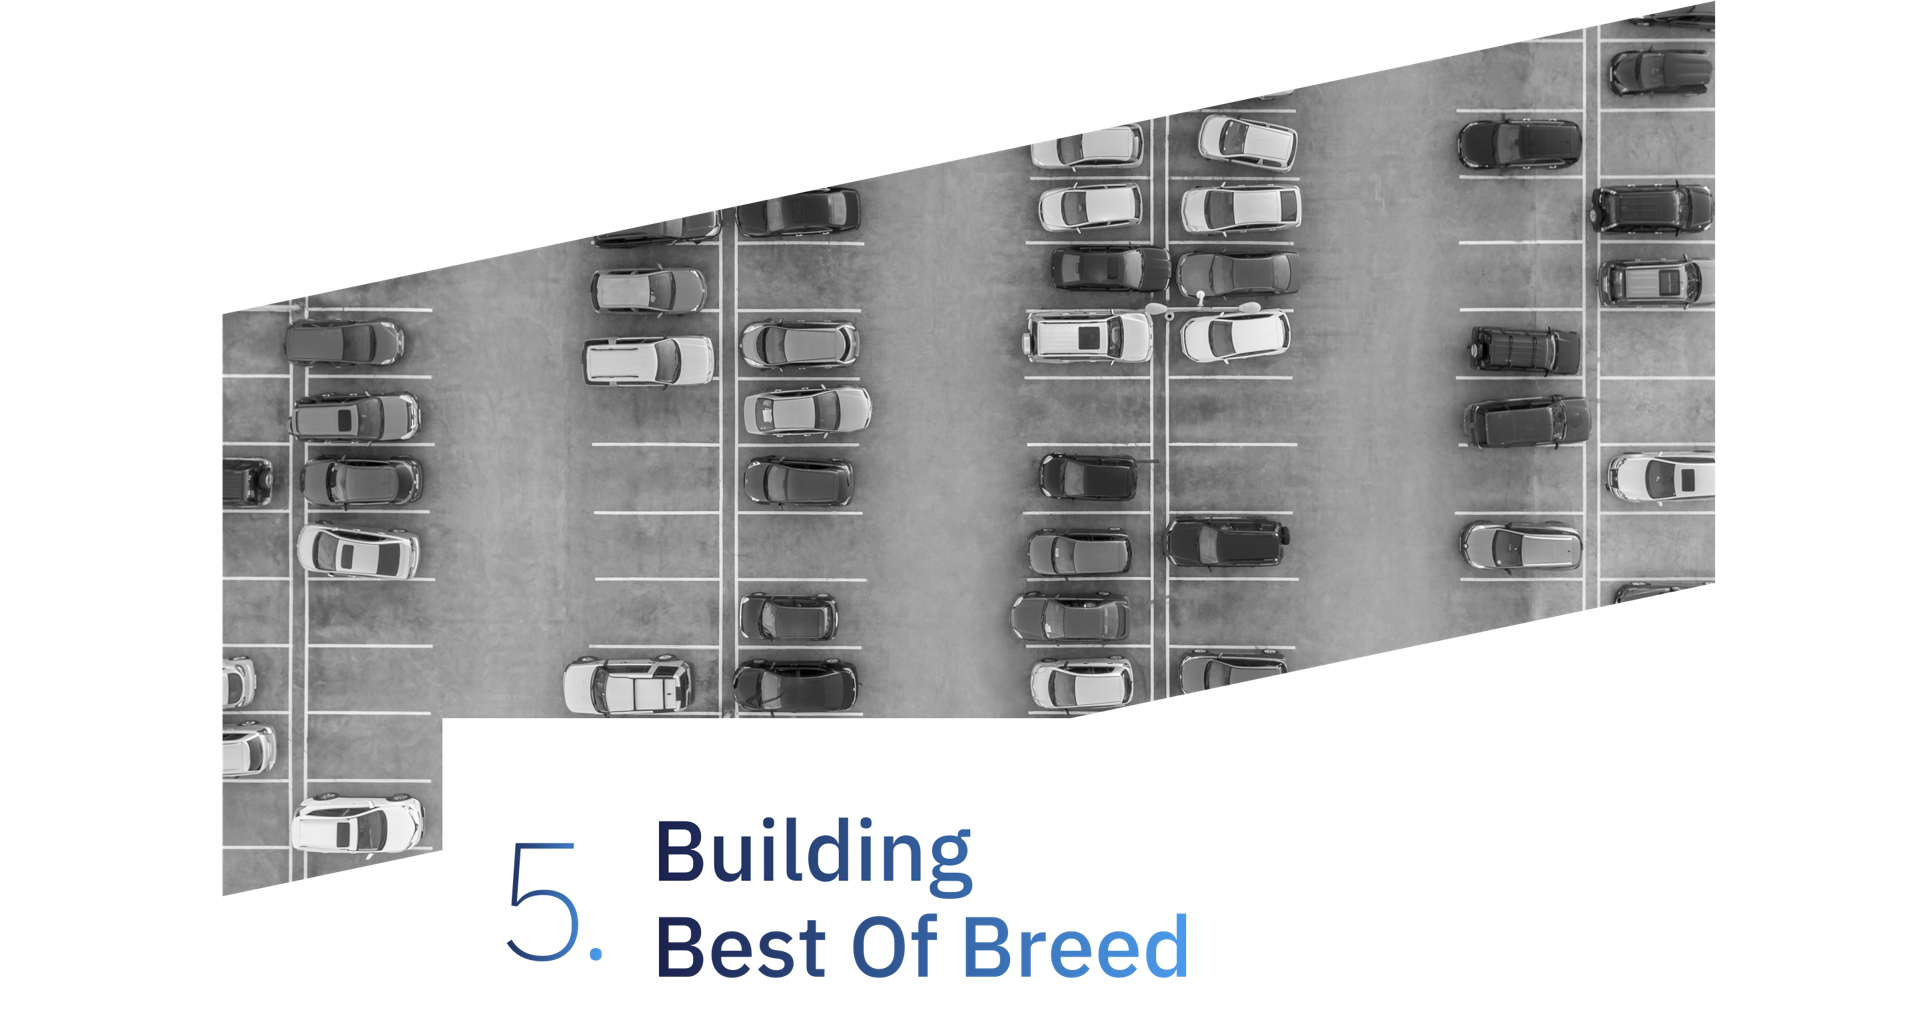 5. Building Best Of Breed